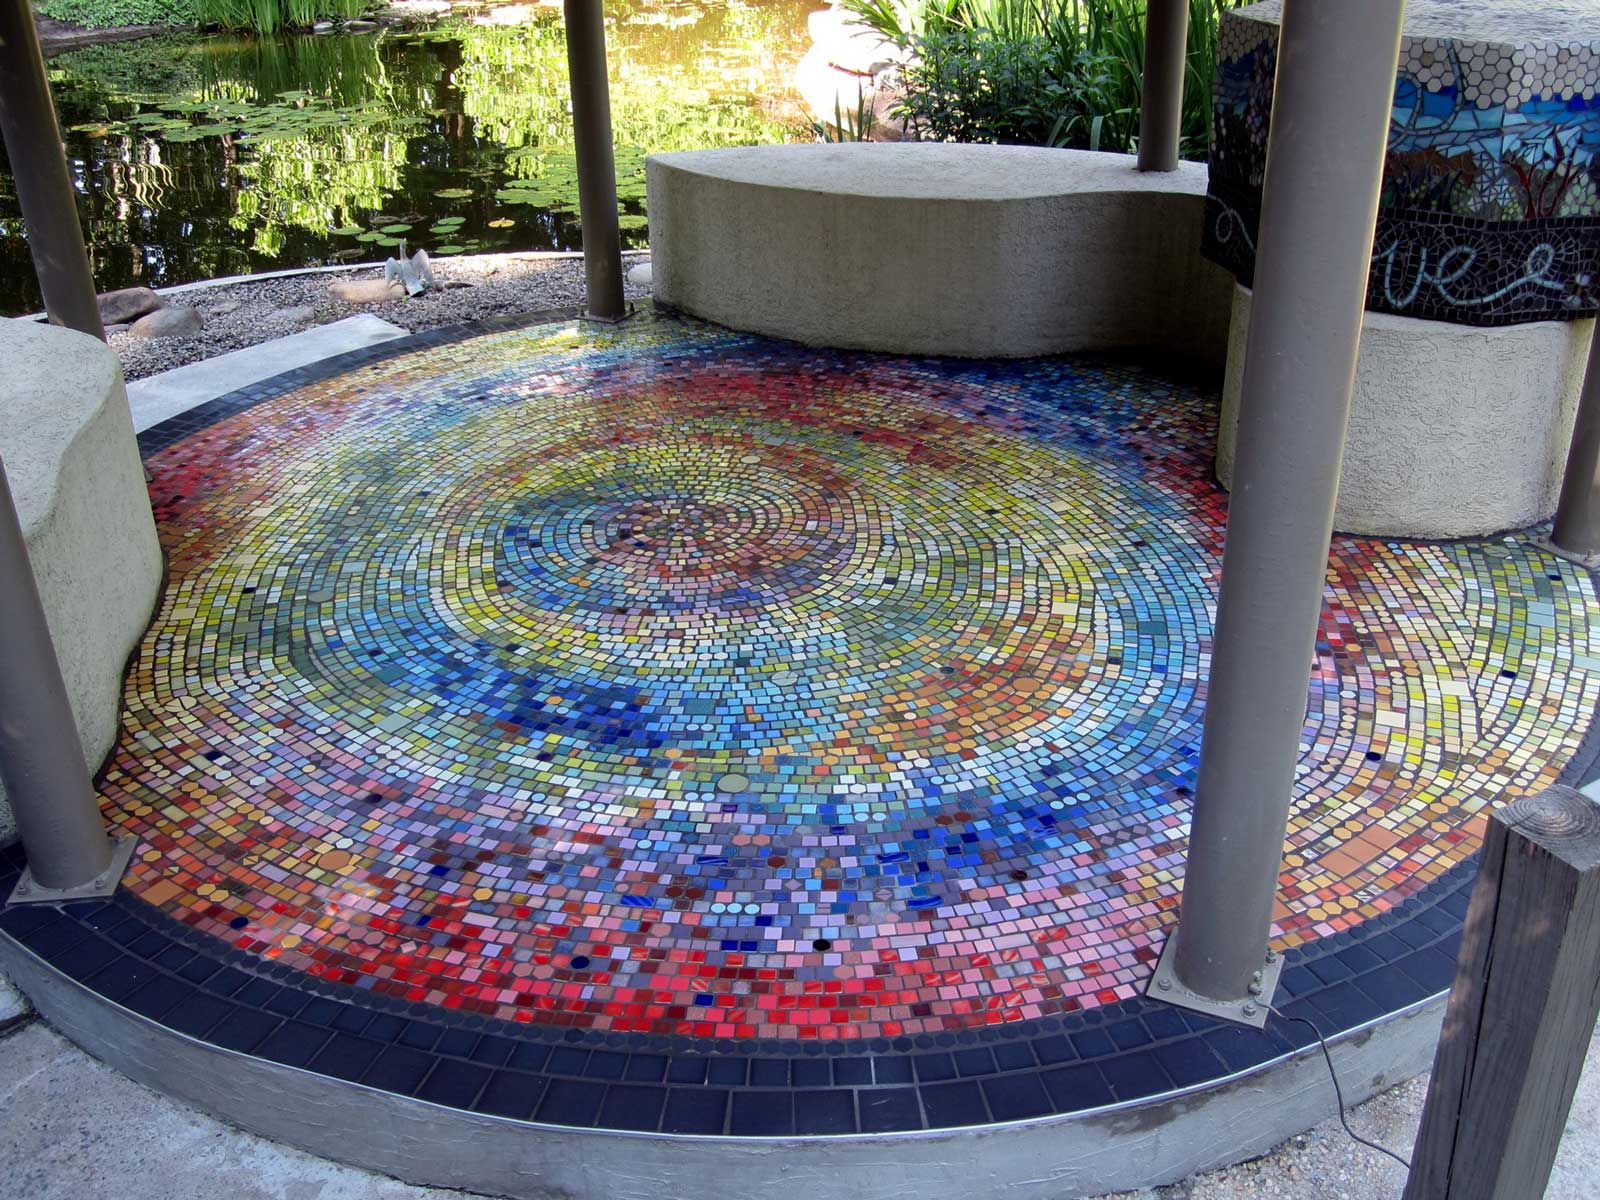 Rakusin Gazebo recycled mosaic tile, private residence, Chapel Hill NC by Jeannette Brossart